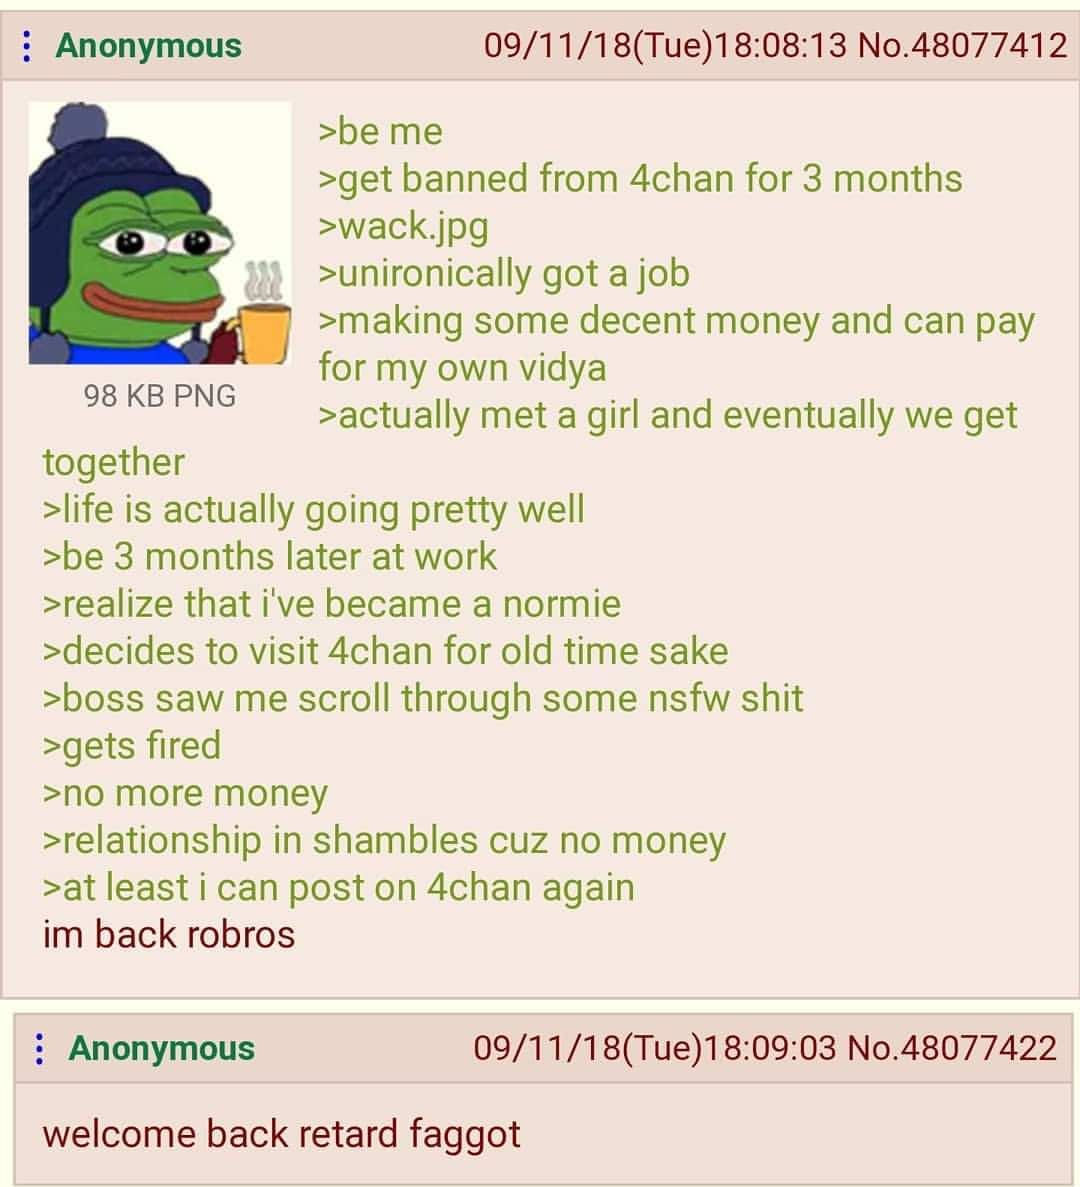 Anon gets banned